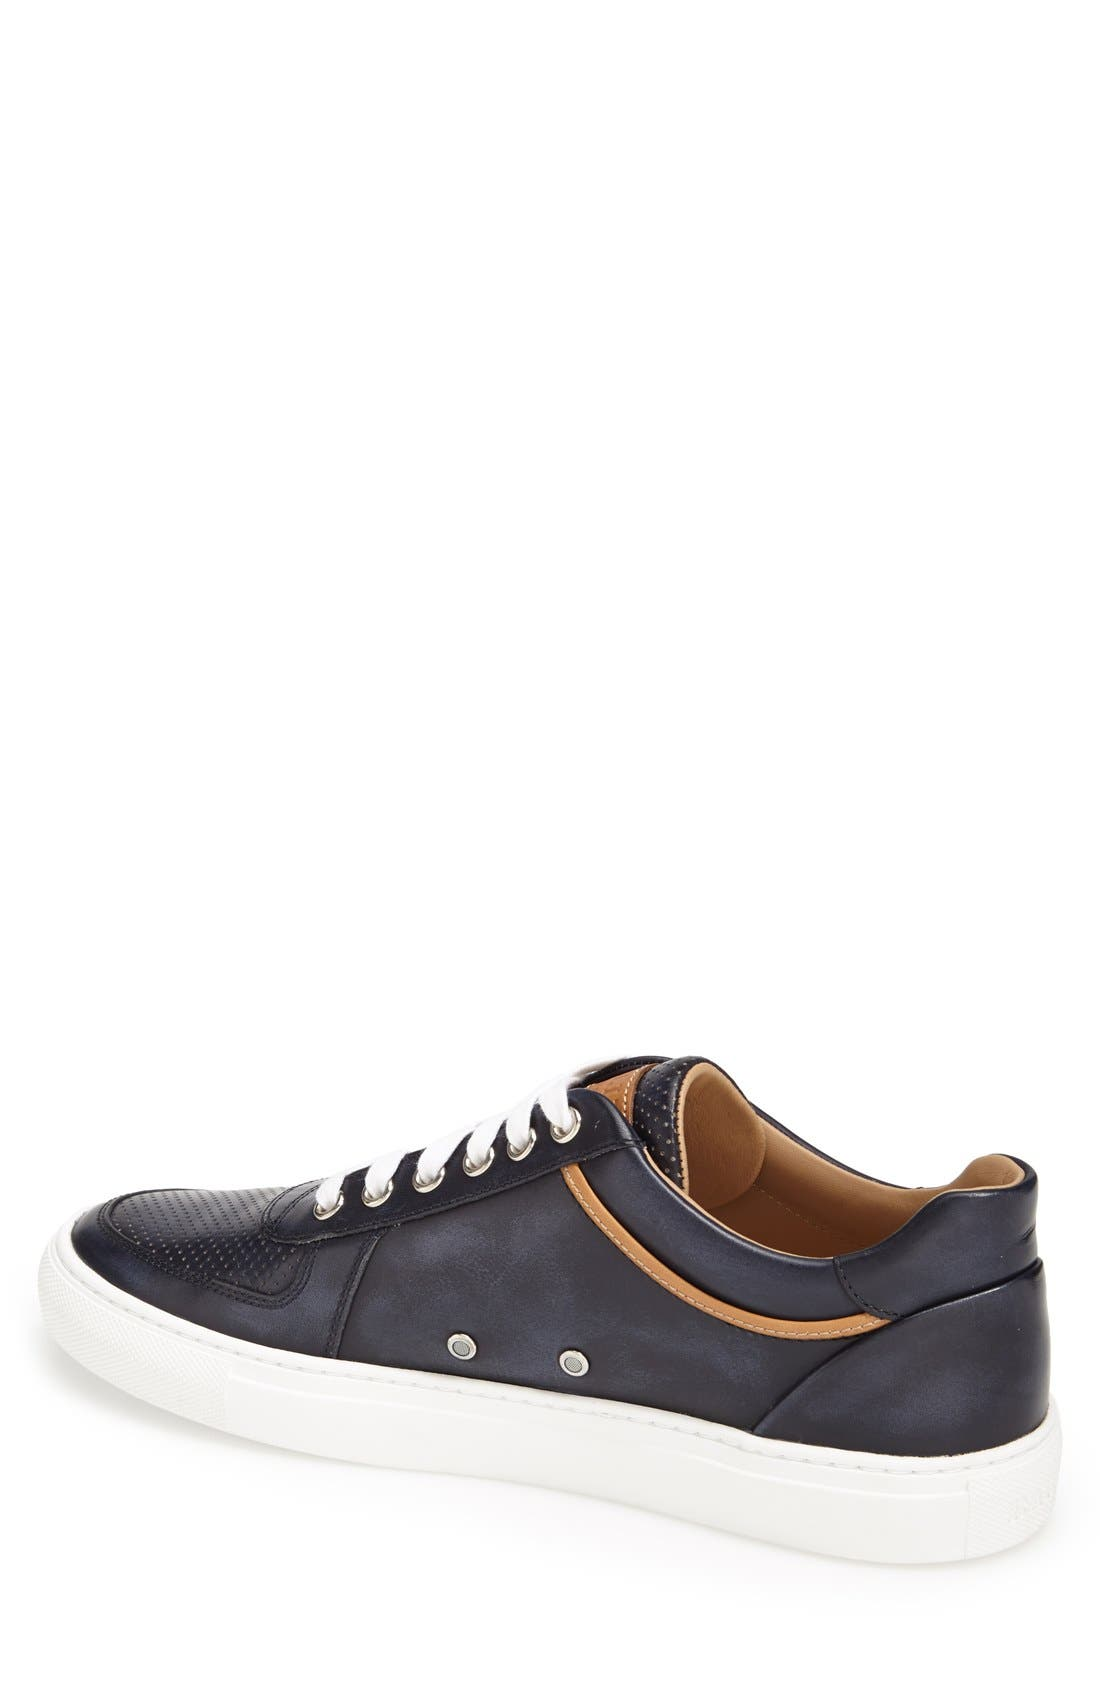 Alternate Image 2  - Bally 'Heider' Leather Sneaker (Men)